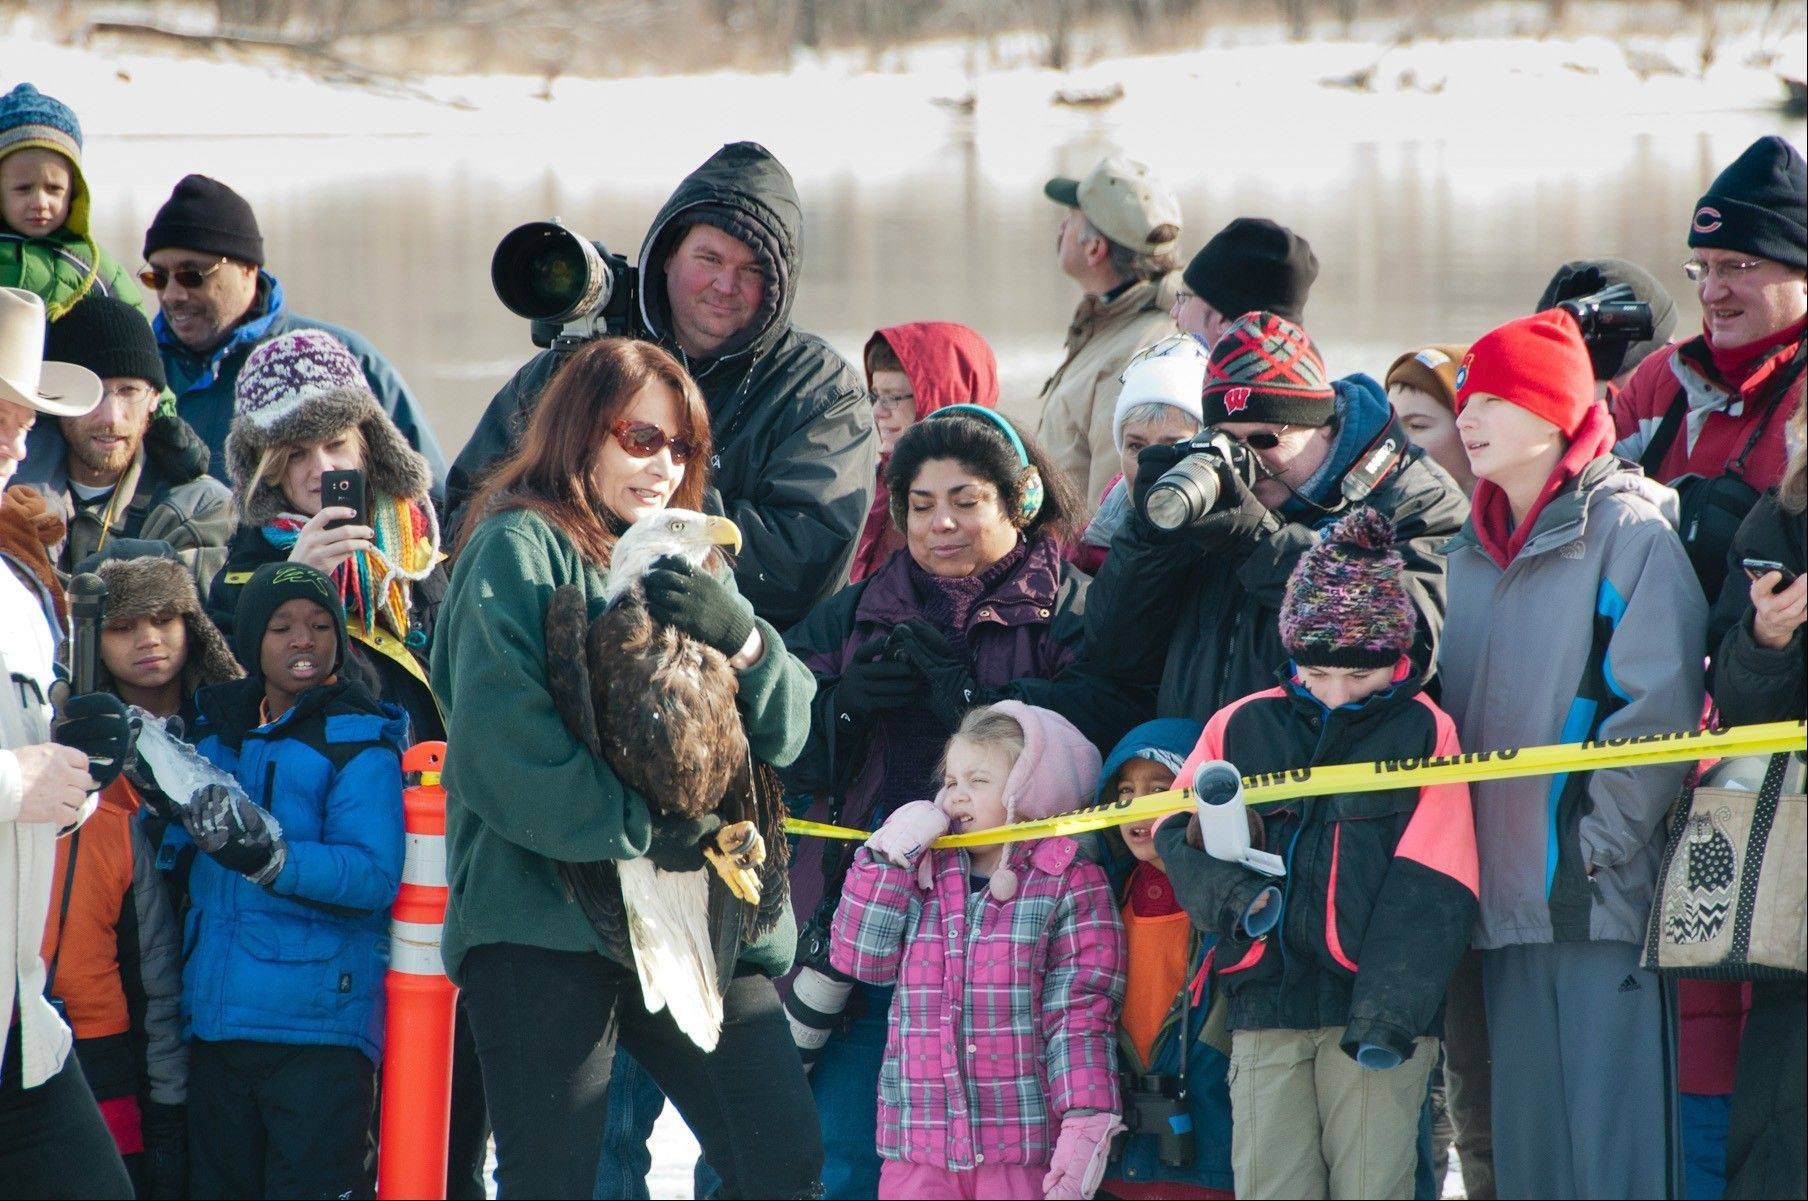 Marge Gibson from the Raptor Education Group releases a rehabilitated eagle on the banks of the Wisconsin River during the annual Eagle Days event in Prairie du Sac, Wis.